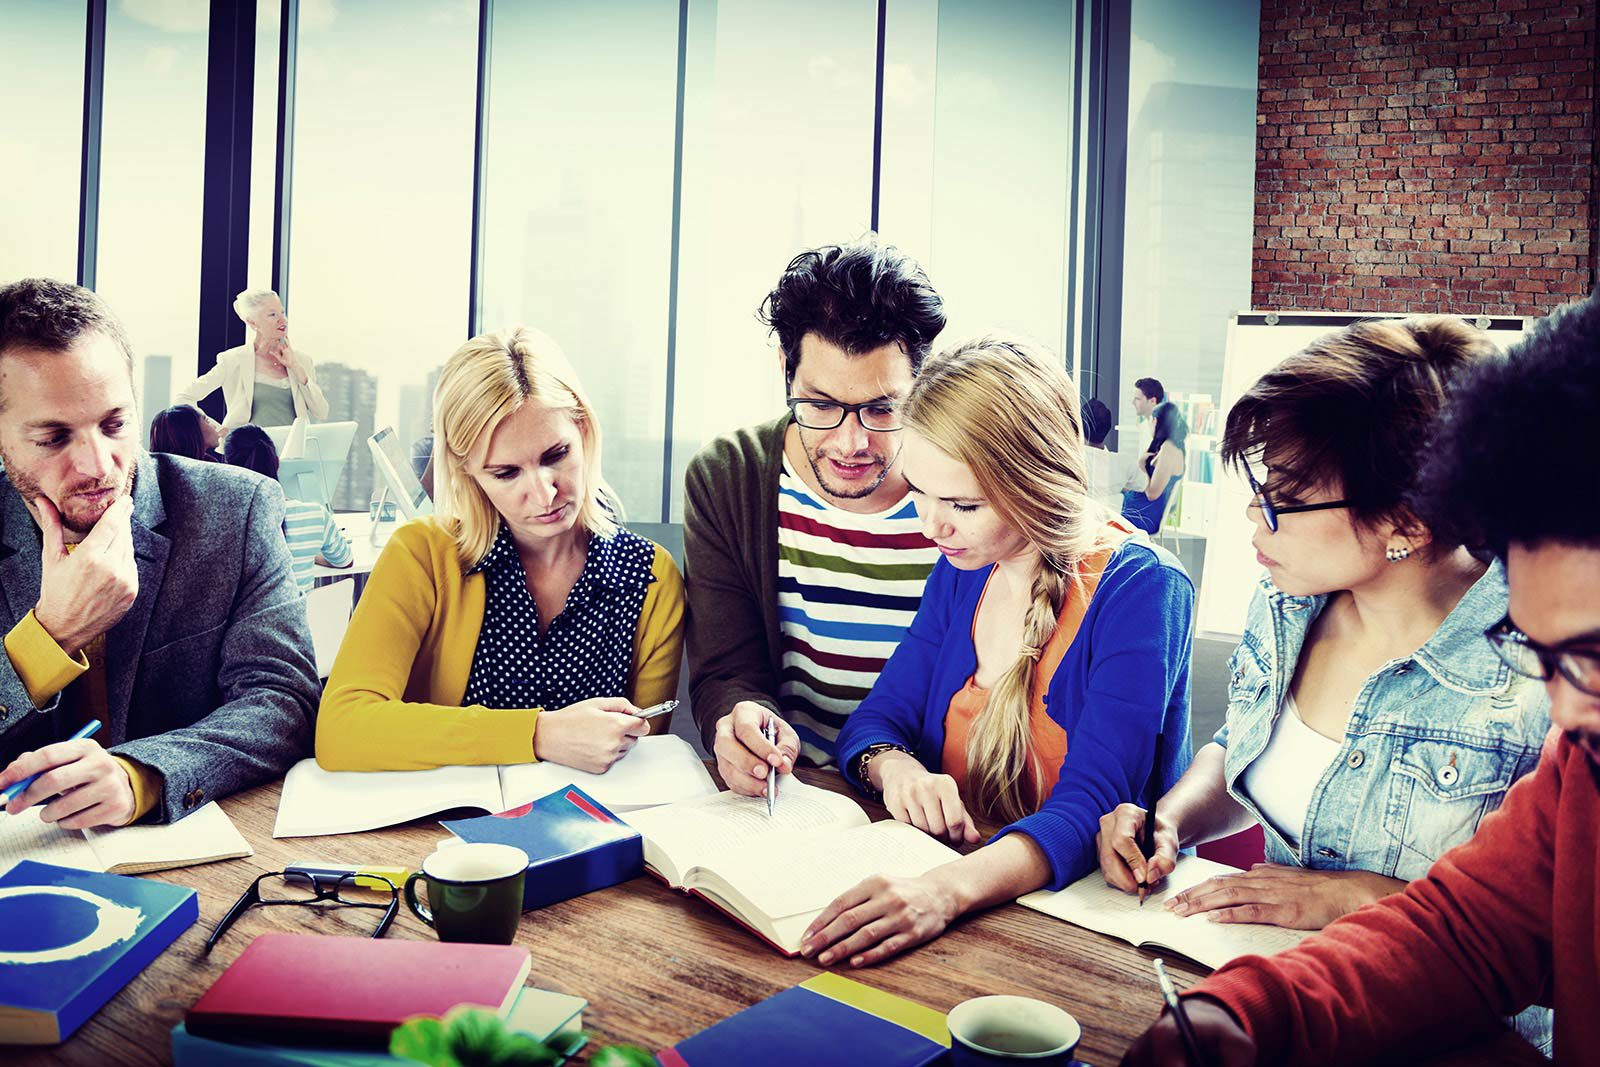 Six people sitting at table looking at notebook.